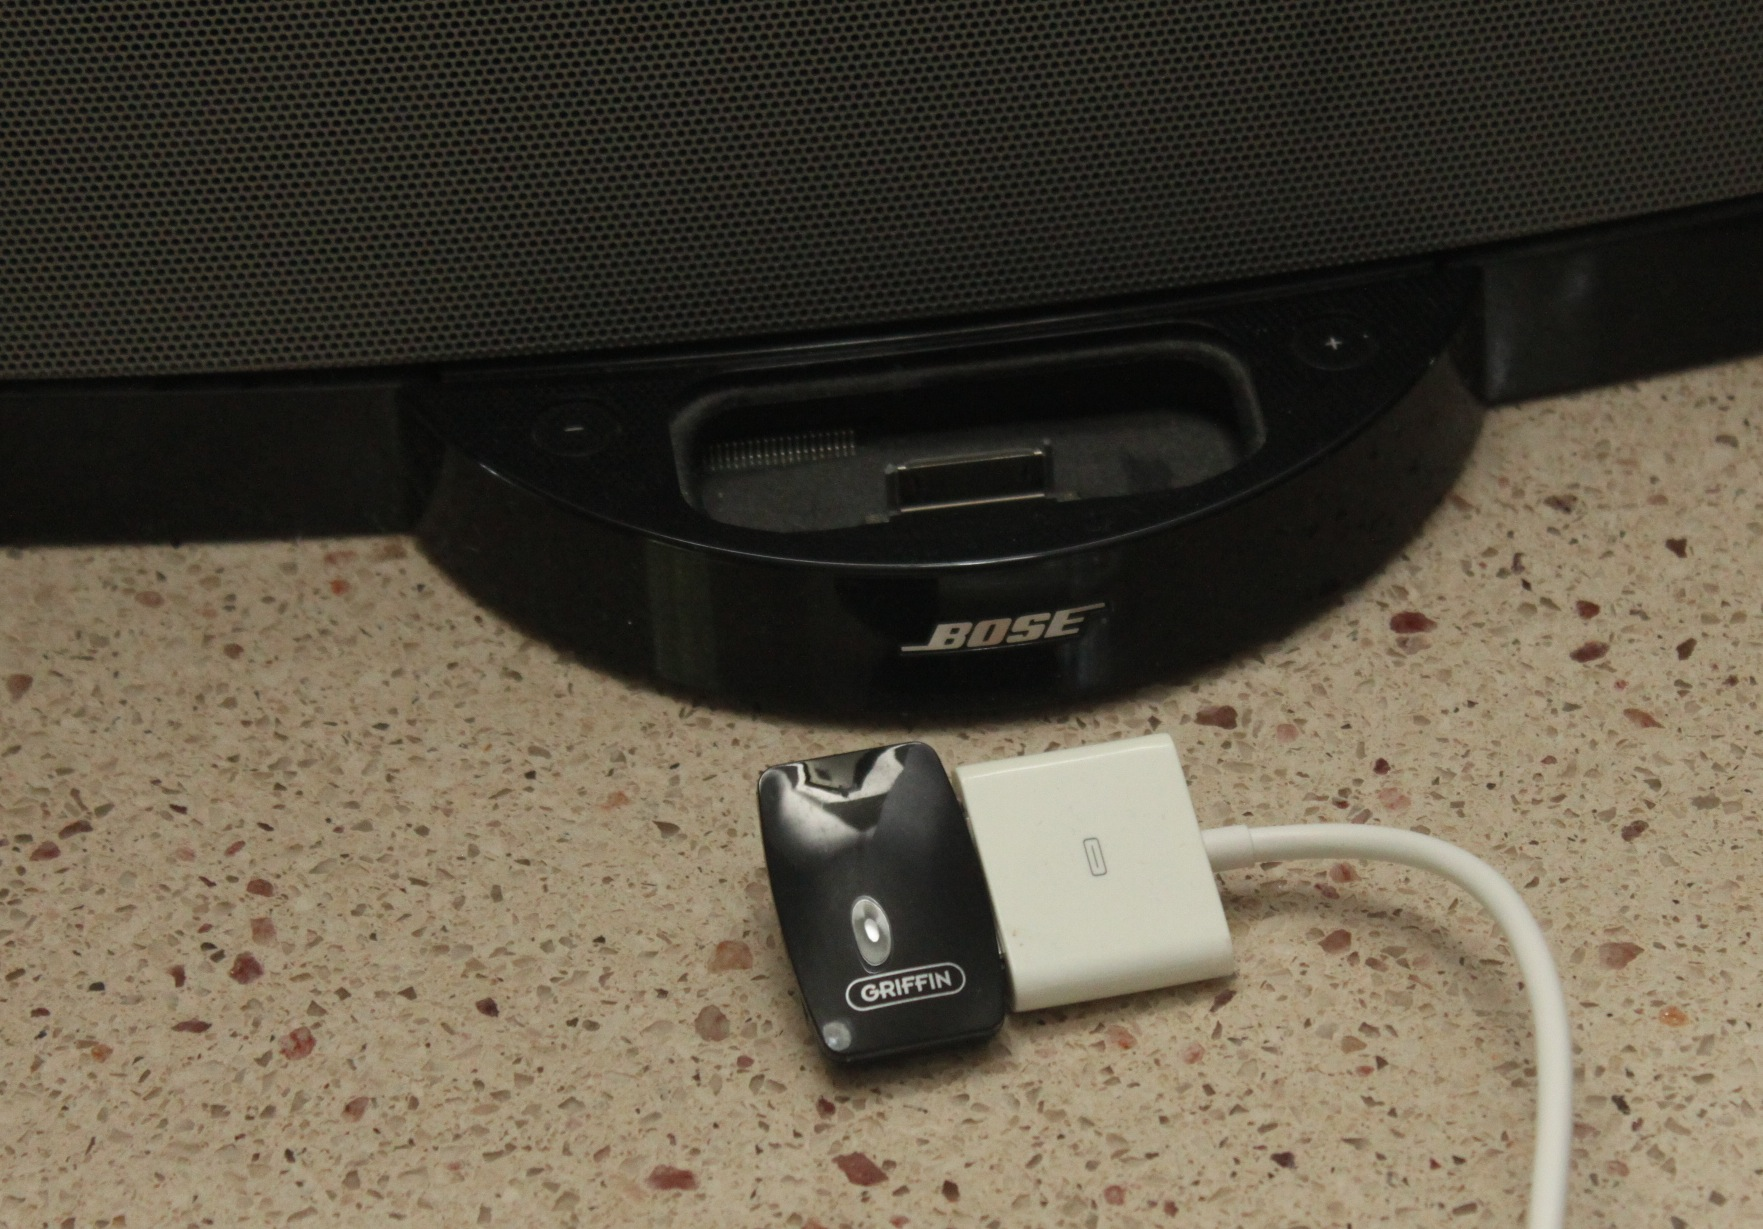 Bose Adapter For Iphone